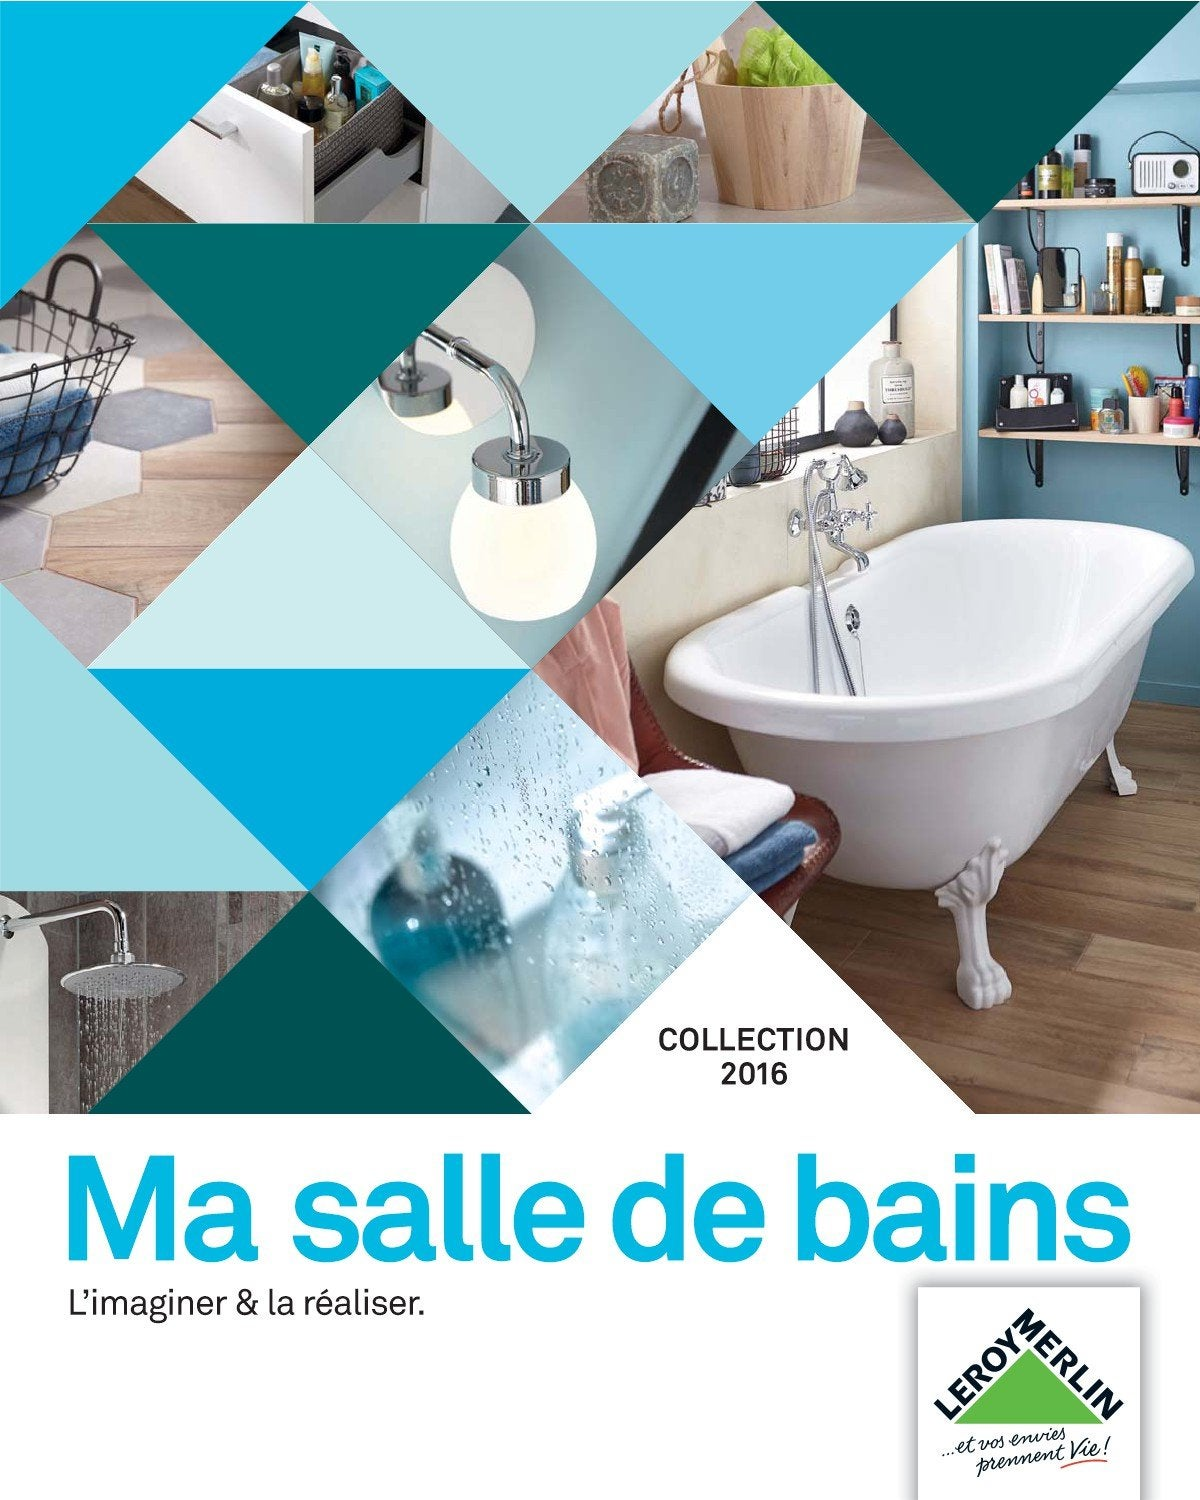 Leroy Merlin Pau Salle De Bain ~ Le Roy Merlin Pau Finest Outlet Leroy Merlin Leroy Merlin Became An